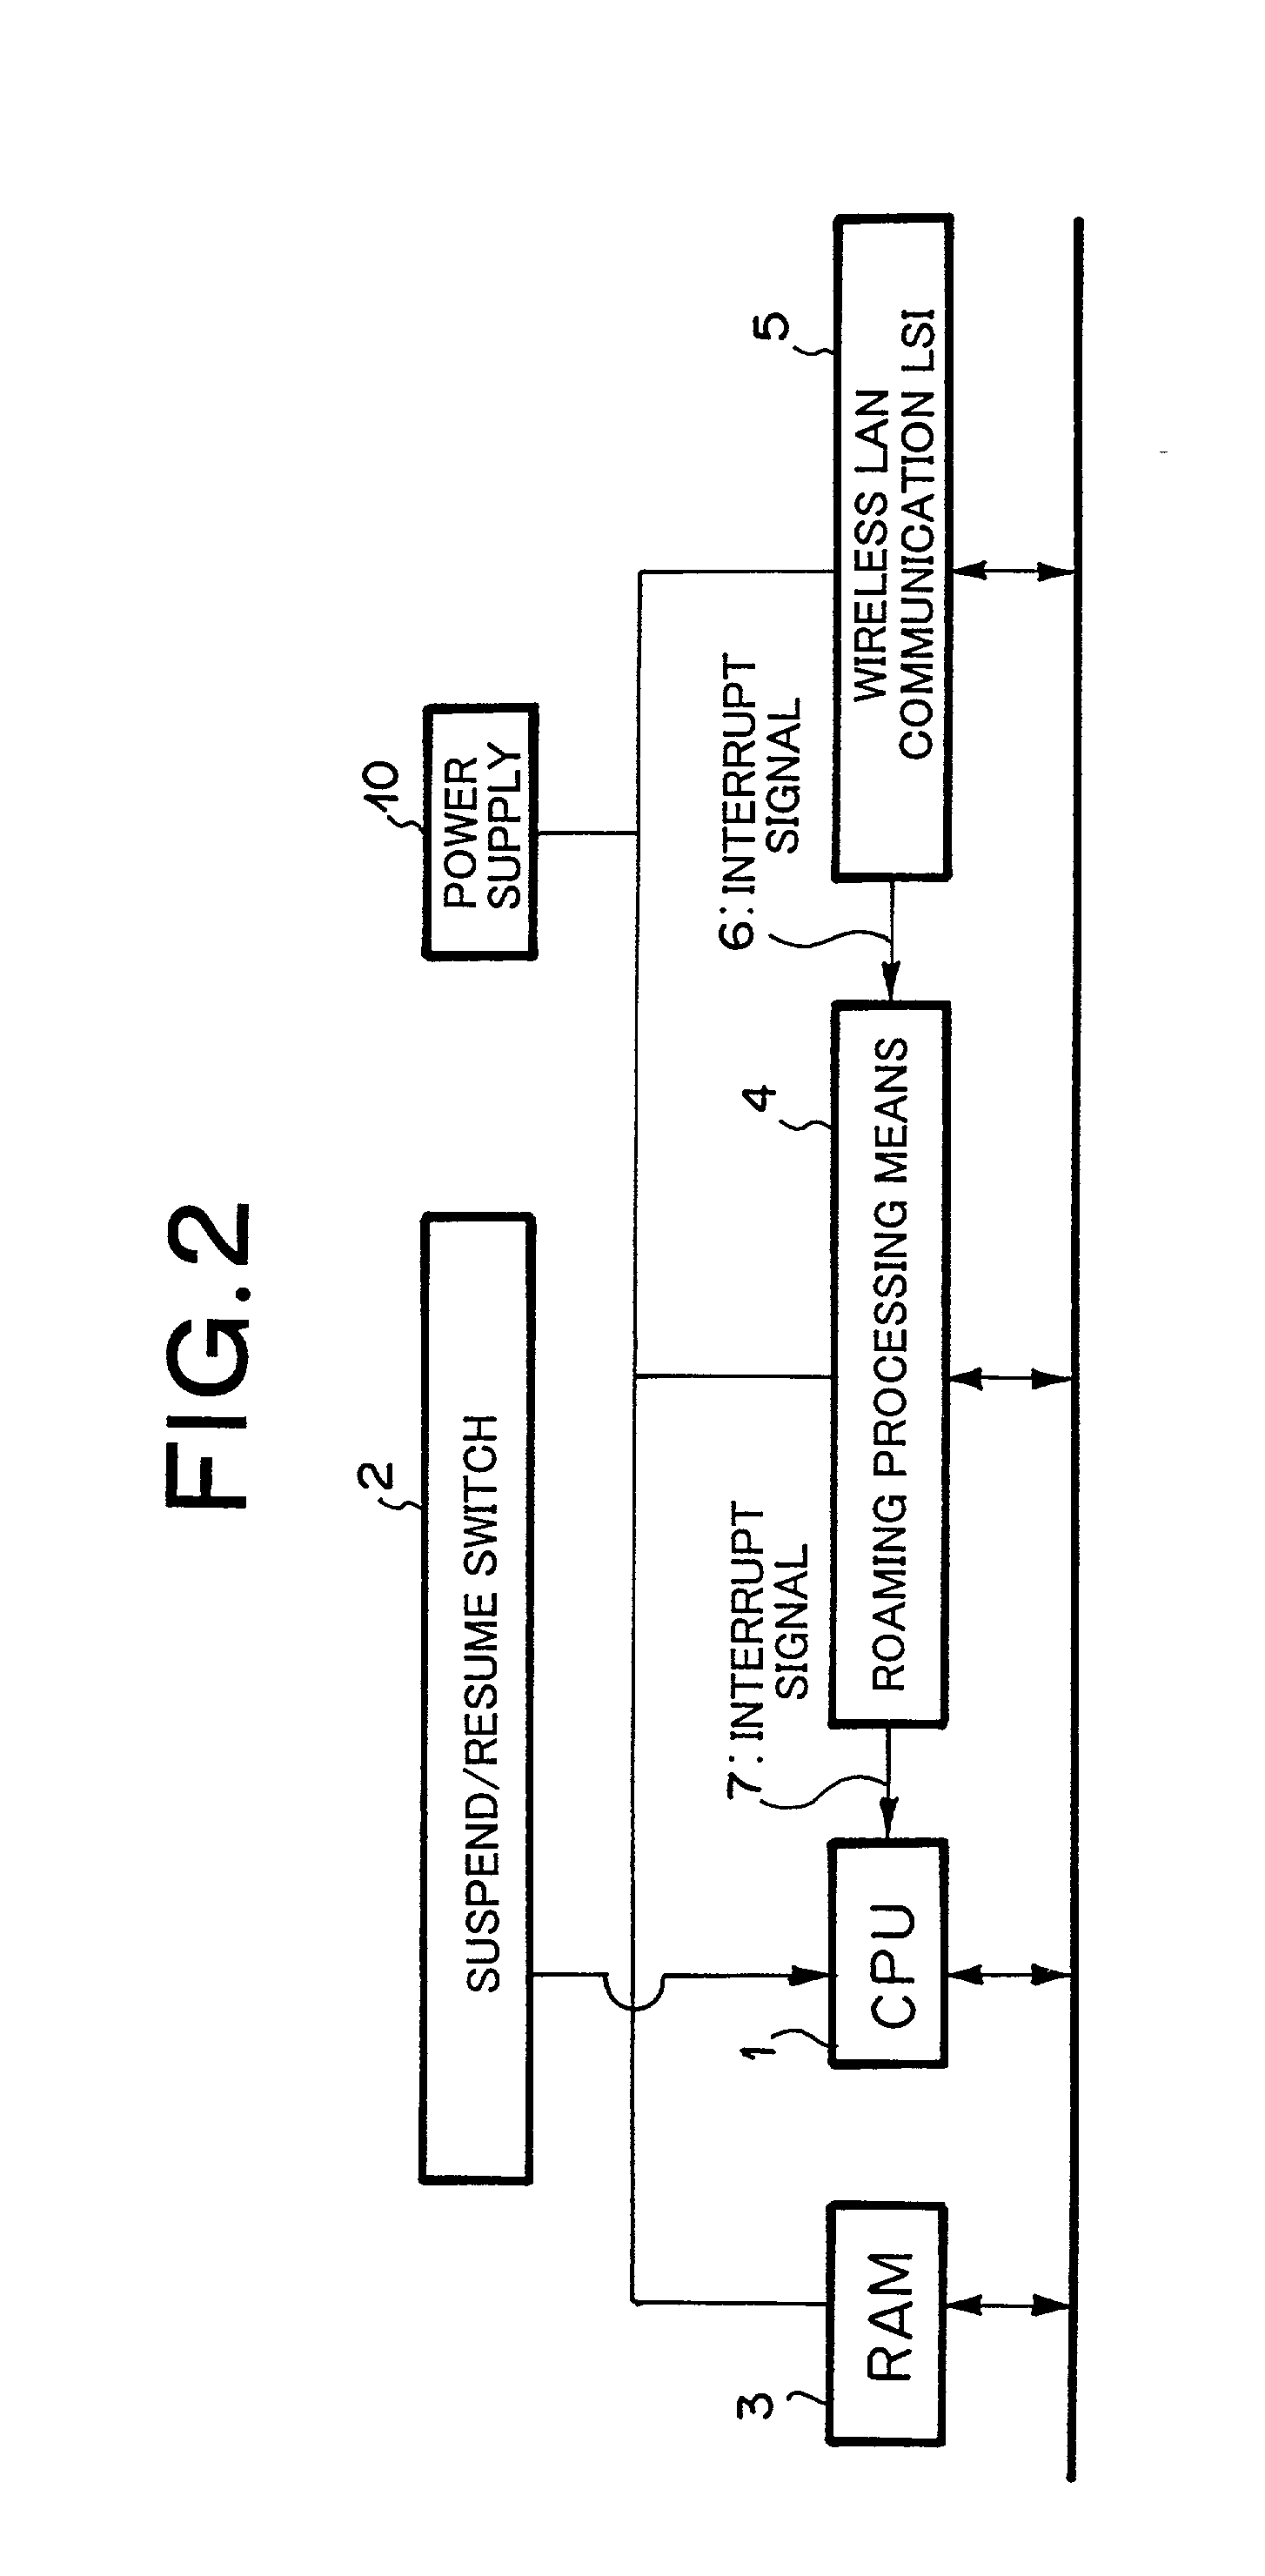 Patent Us20010004594 Power Management System For Use With Wireless Lan Diagram Drawing